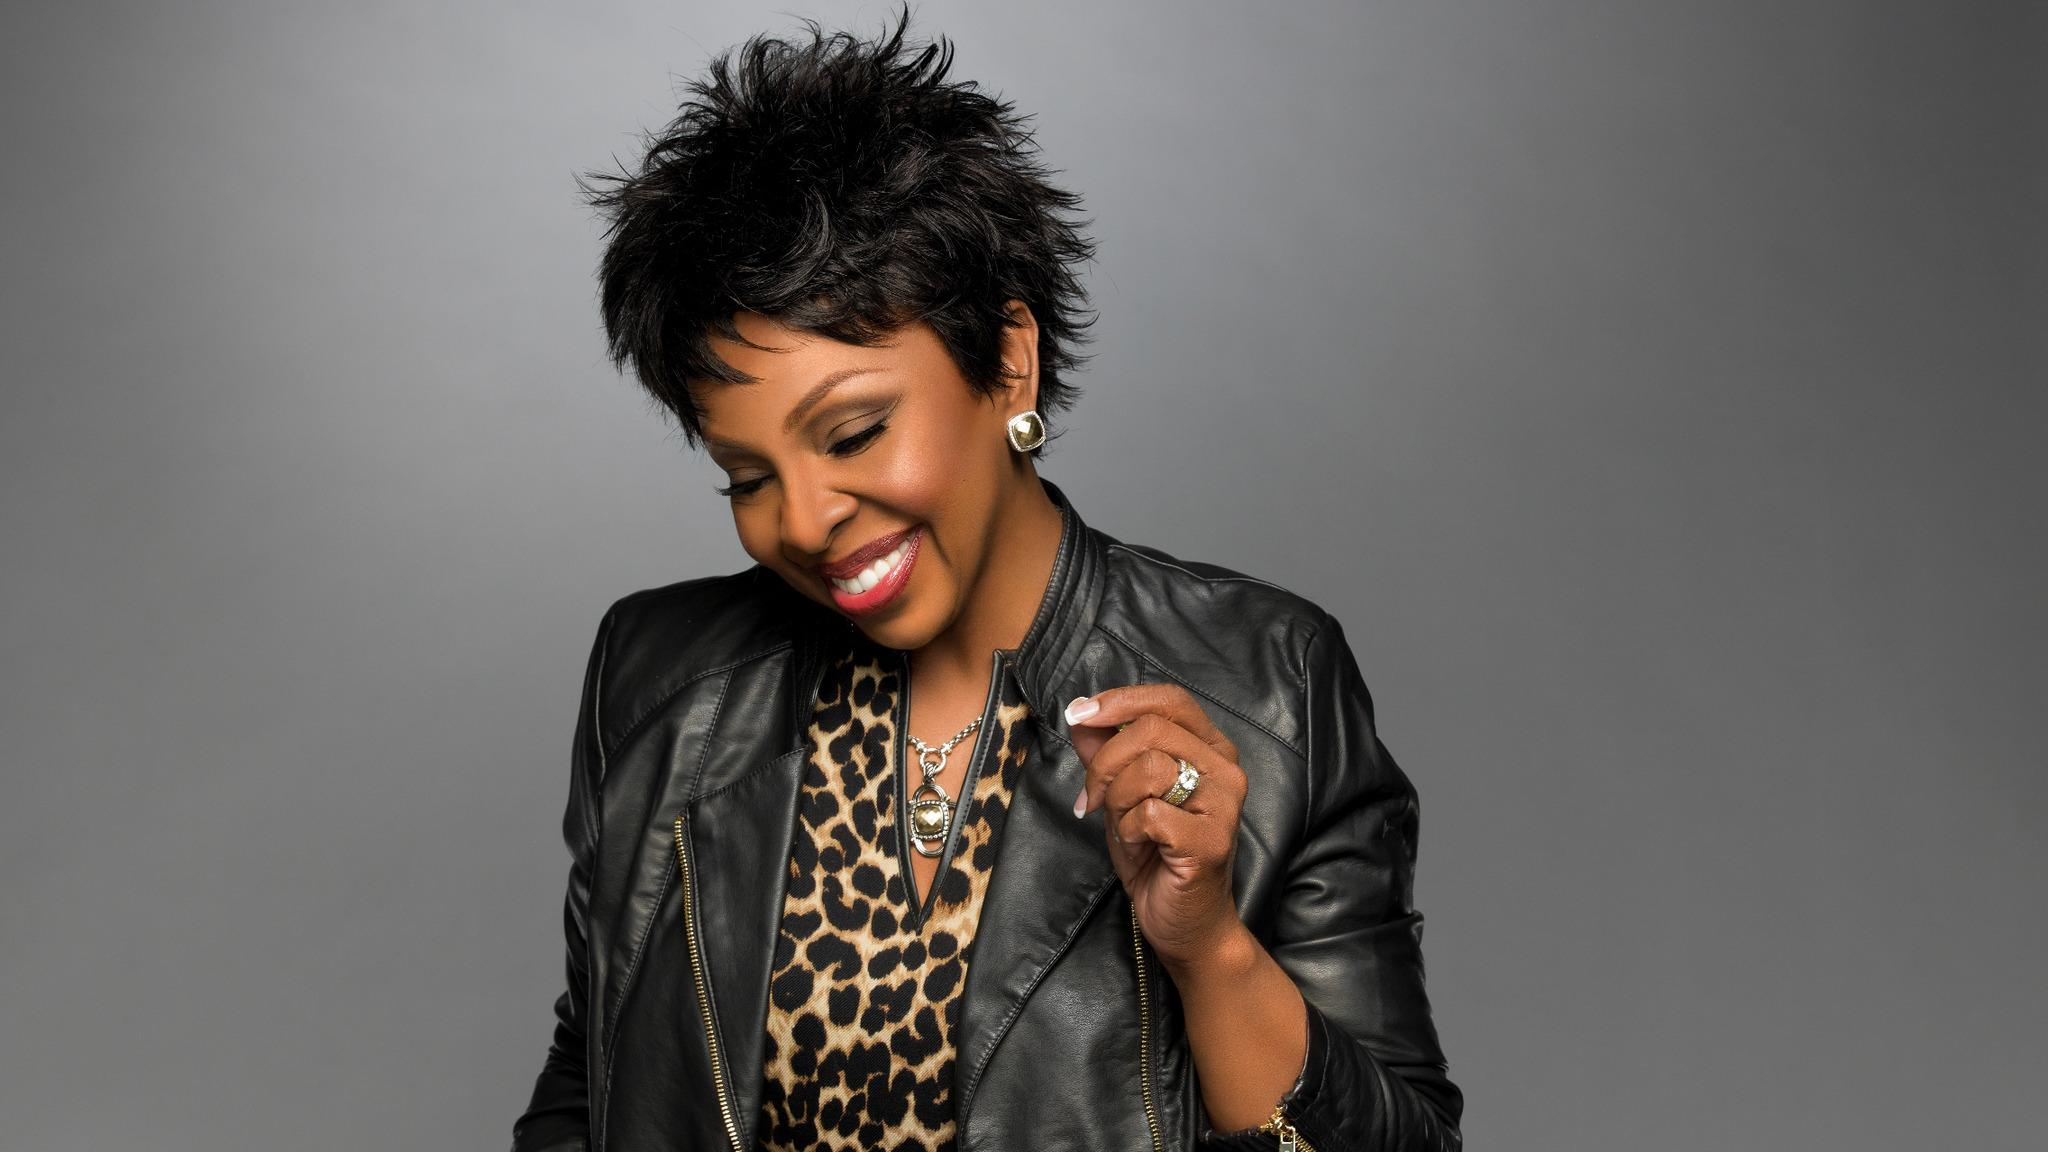 Gladys Knight at The Grand Theater at Foxwoods Resort Casino